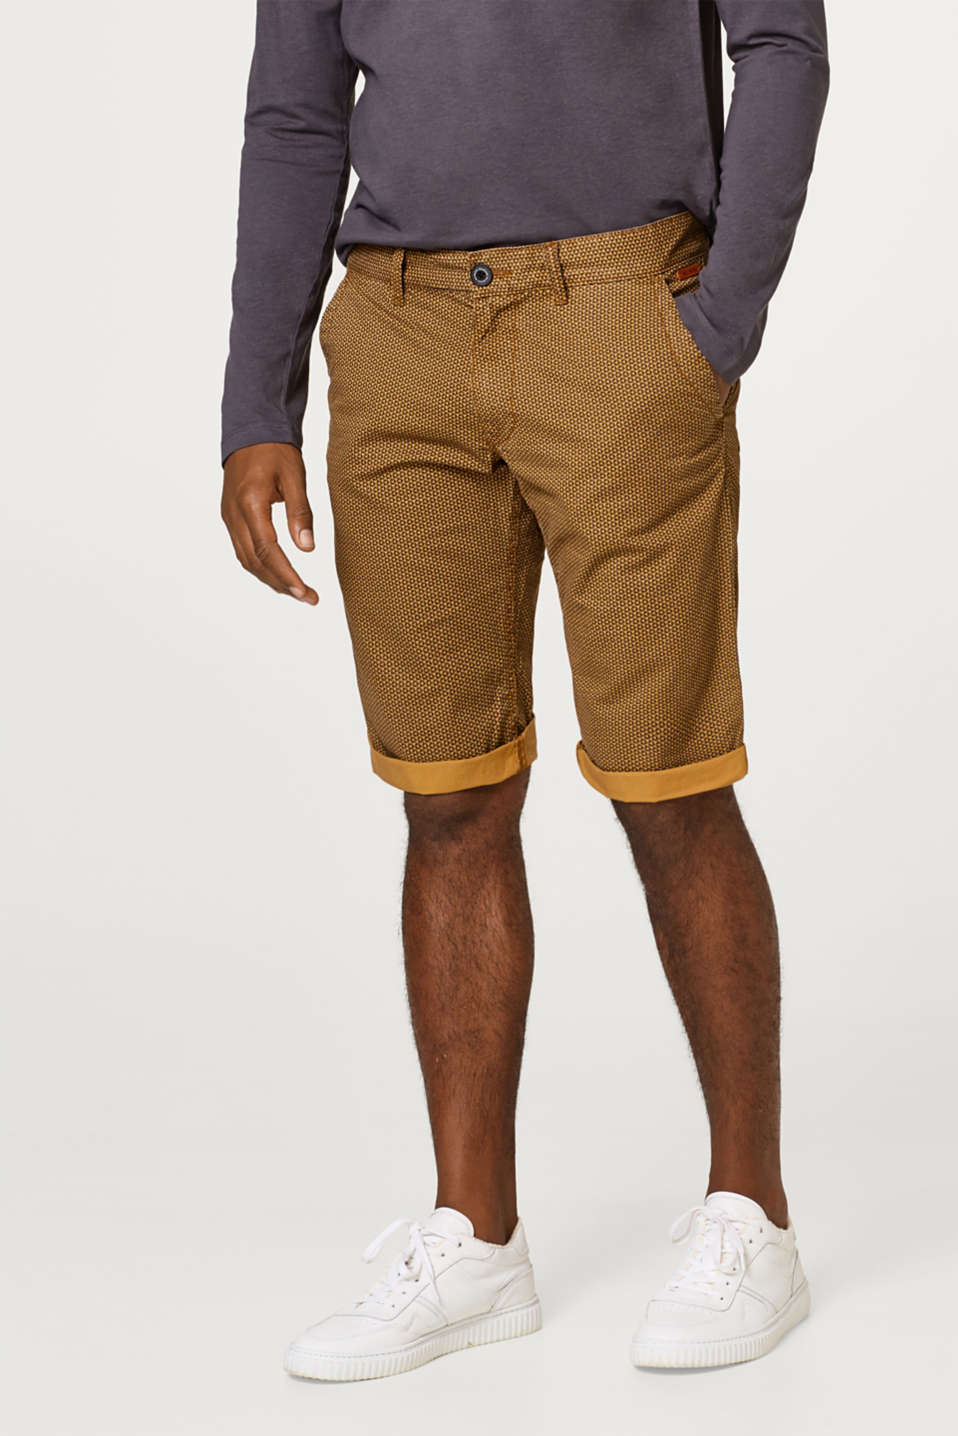 edc - Chino cotton shorts with a minimalist print